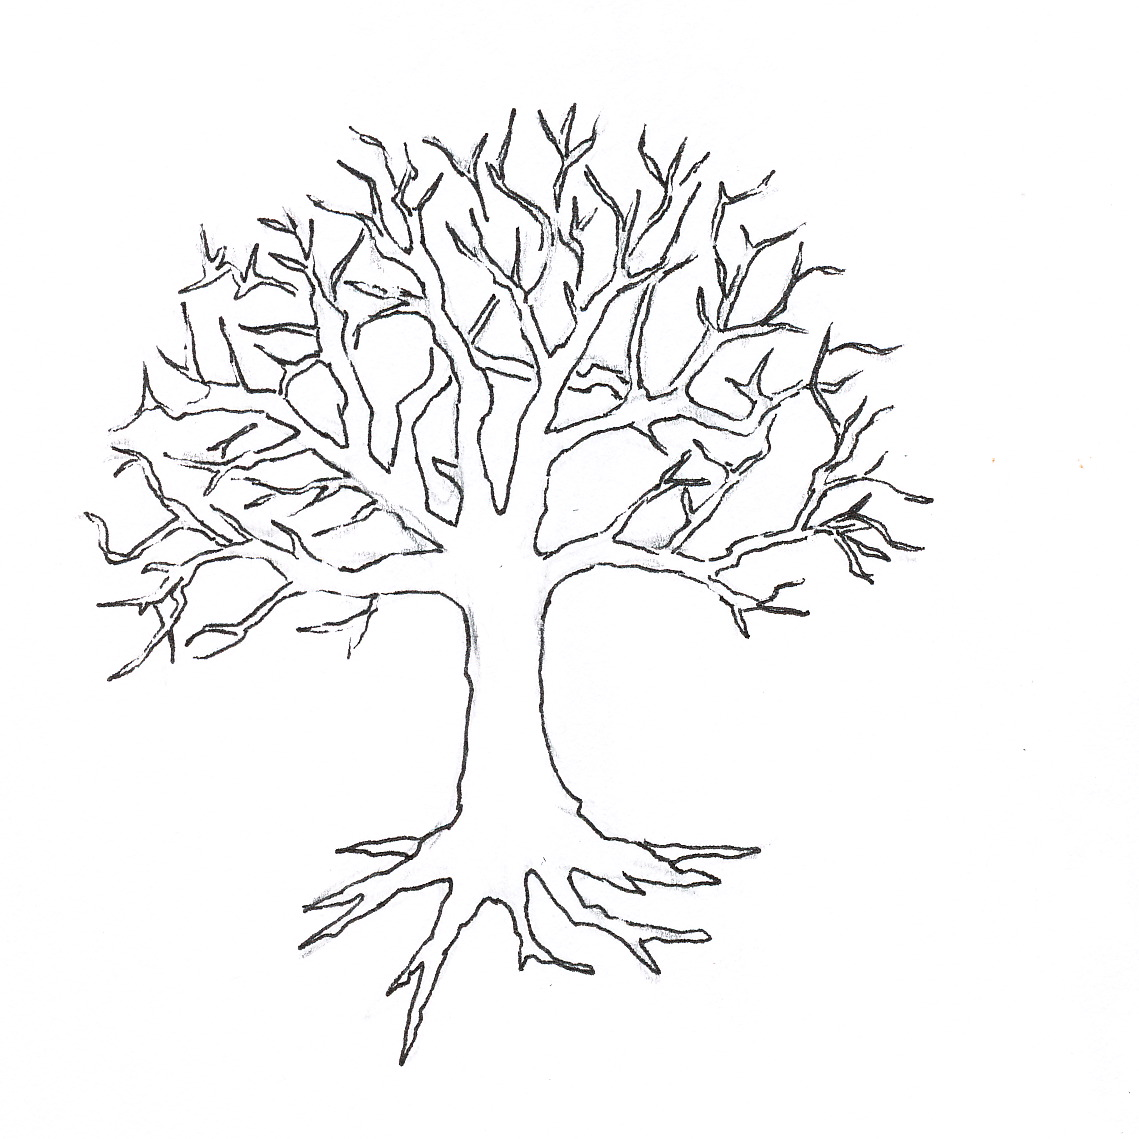 Tree Top Drawing at GetDrawings.com | Free for personal use Tree Top ...